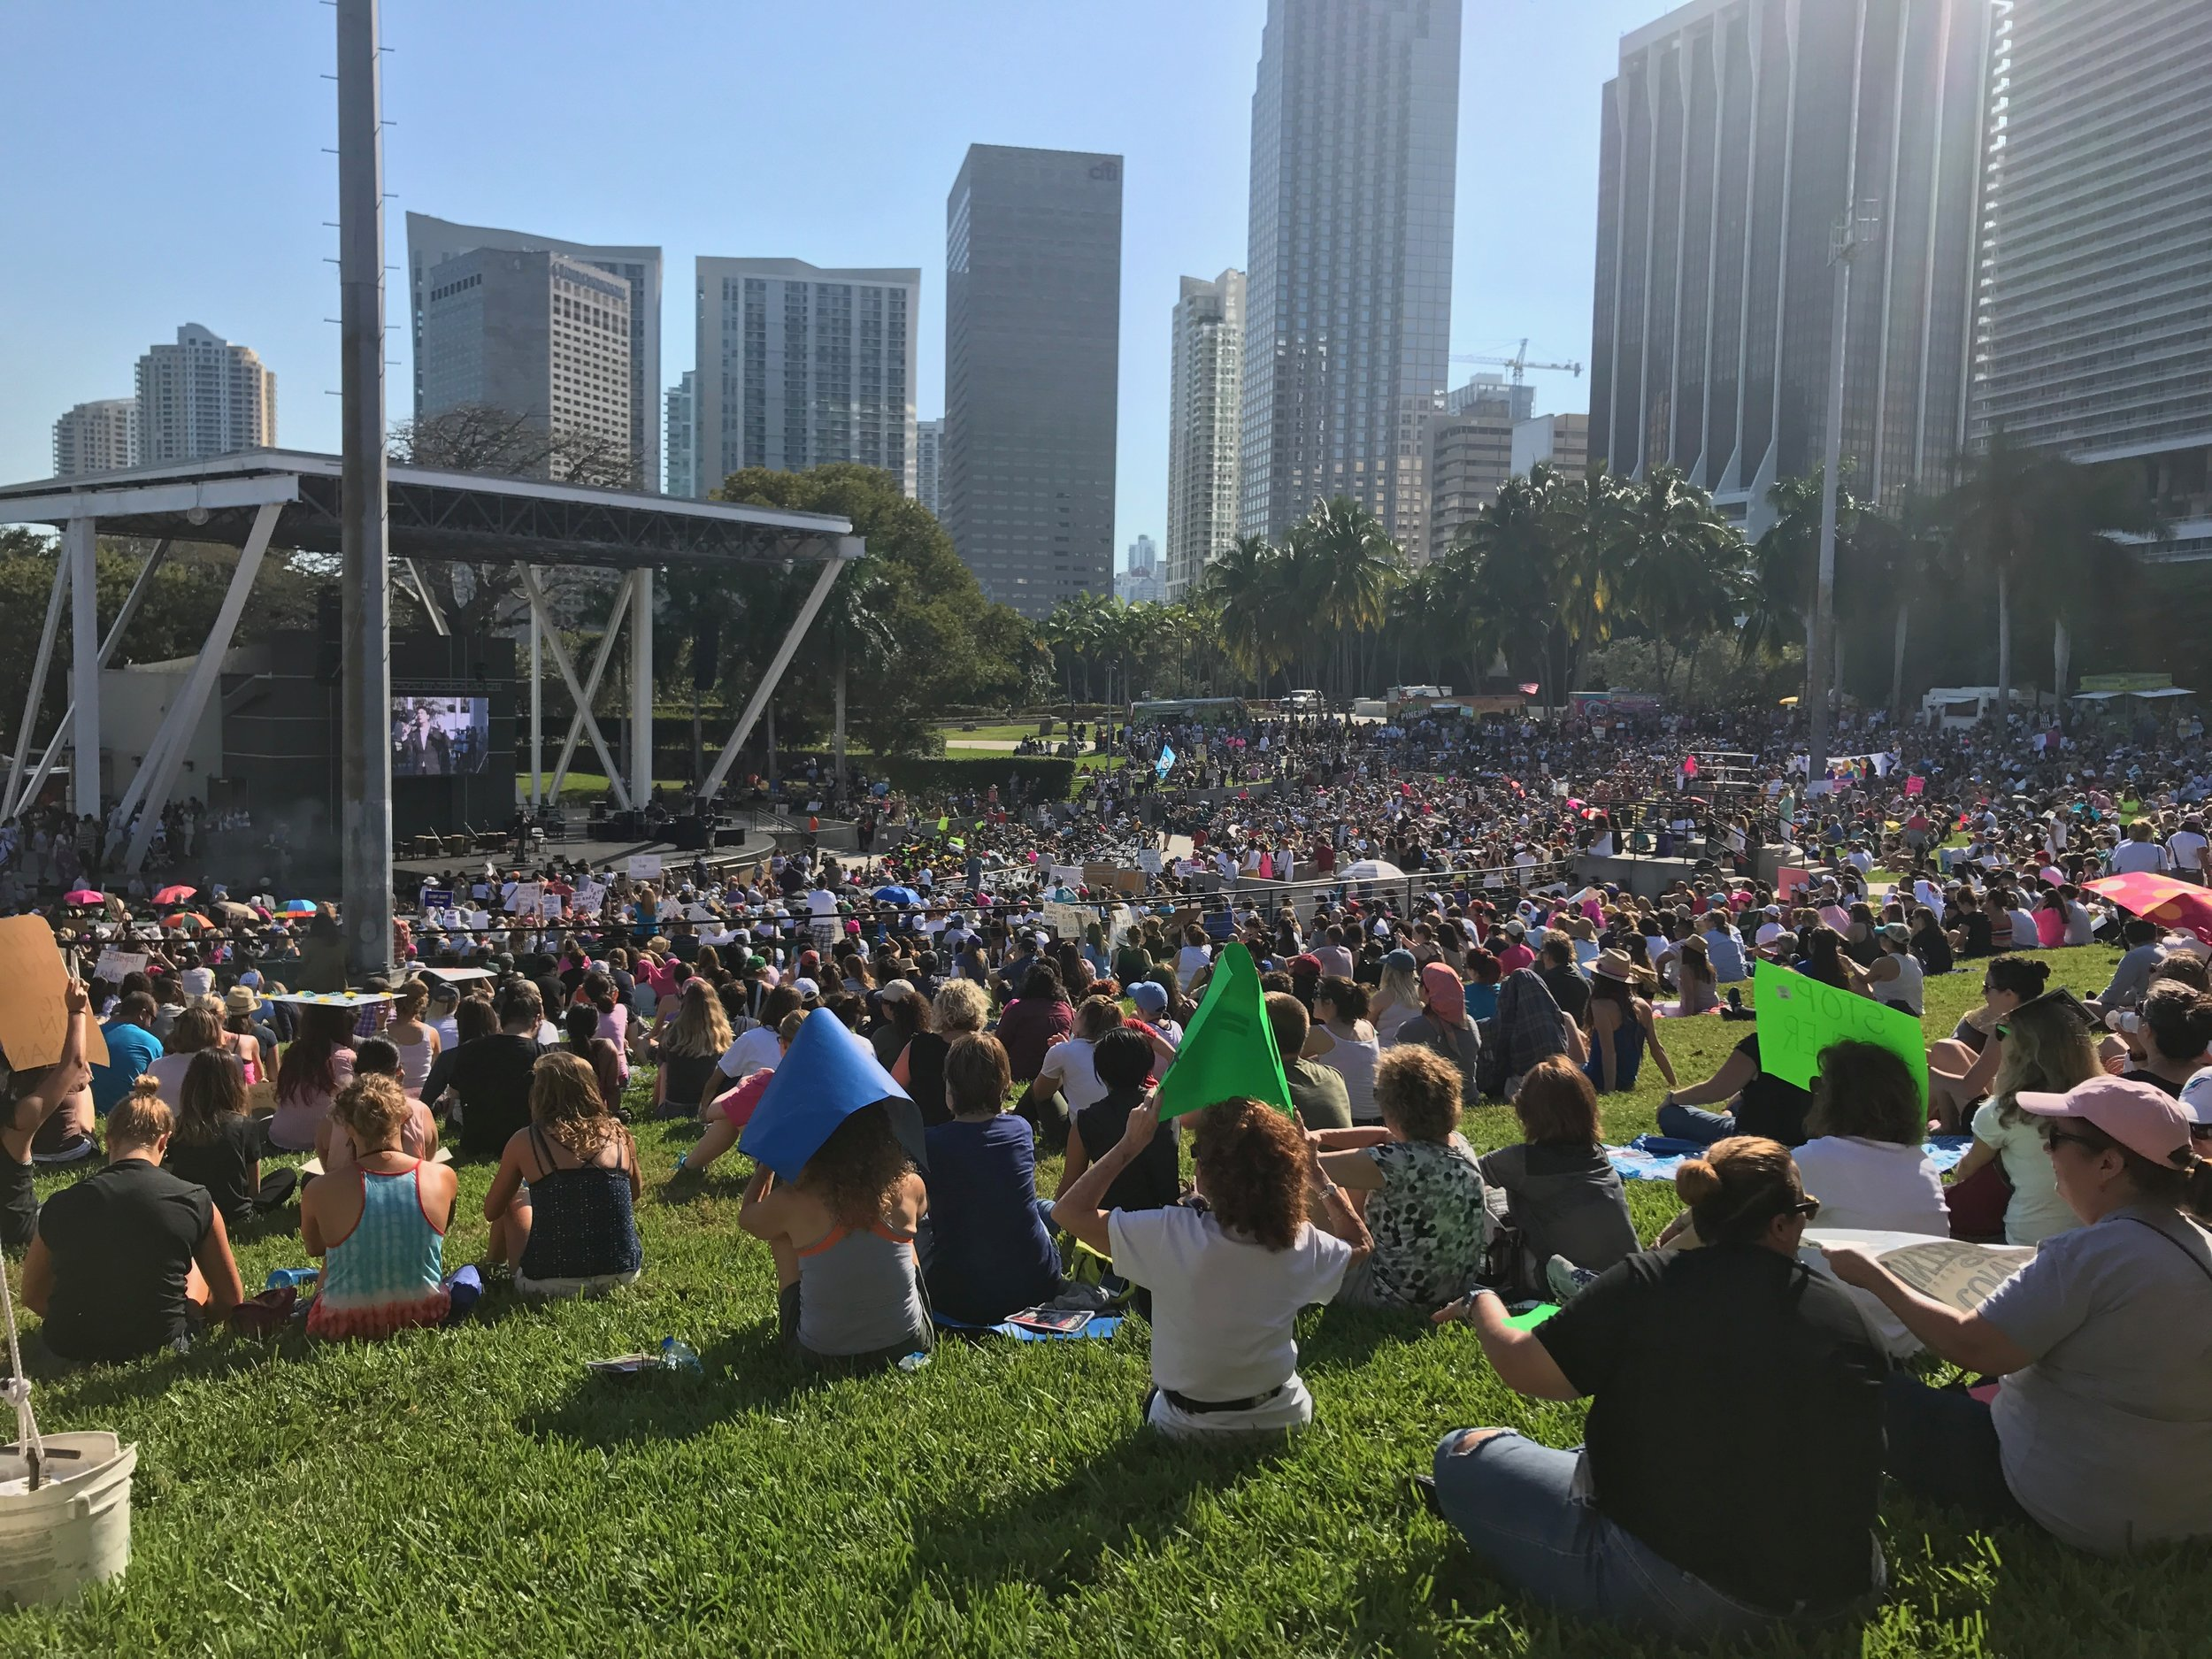 Bayfront Park Amphitheater in downtown Miami- 10,000 attendees